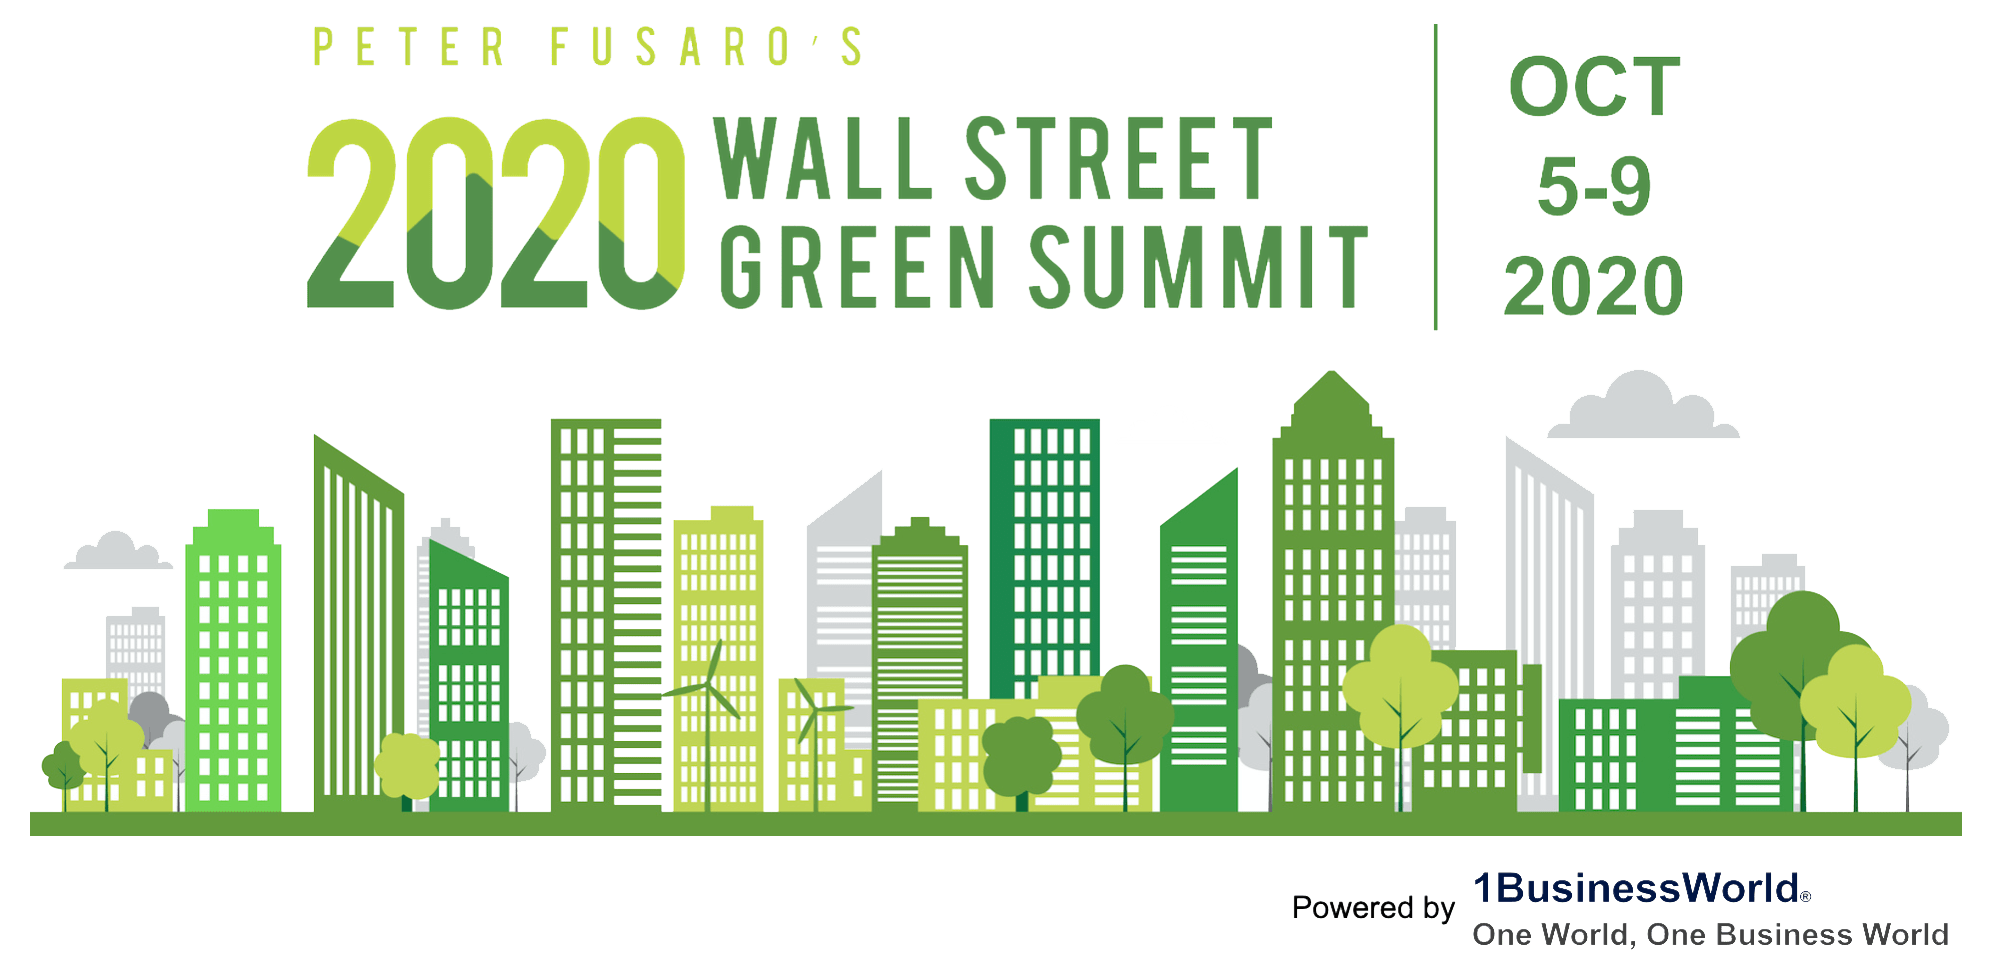 2020 Wall Street Green Summit